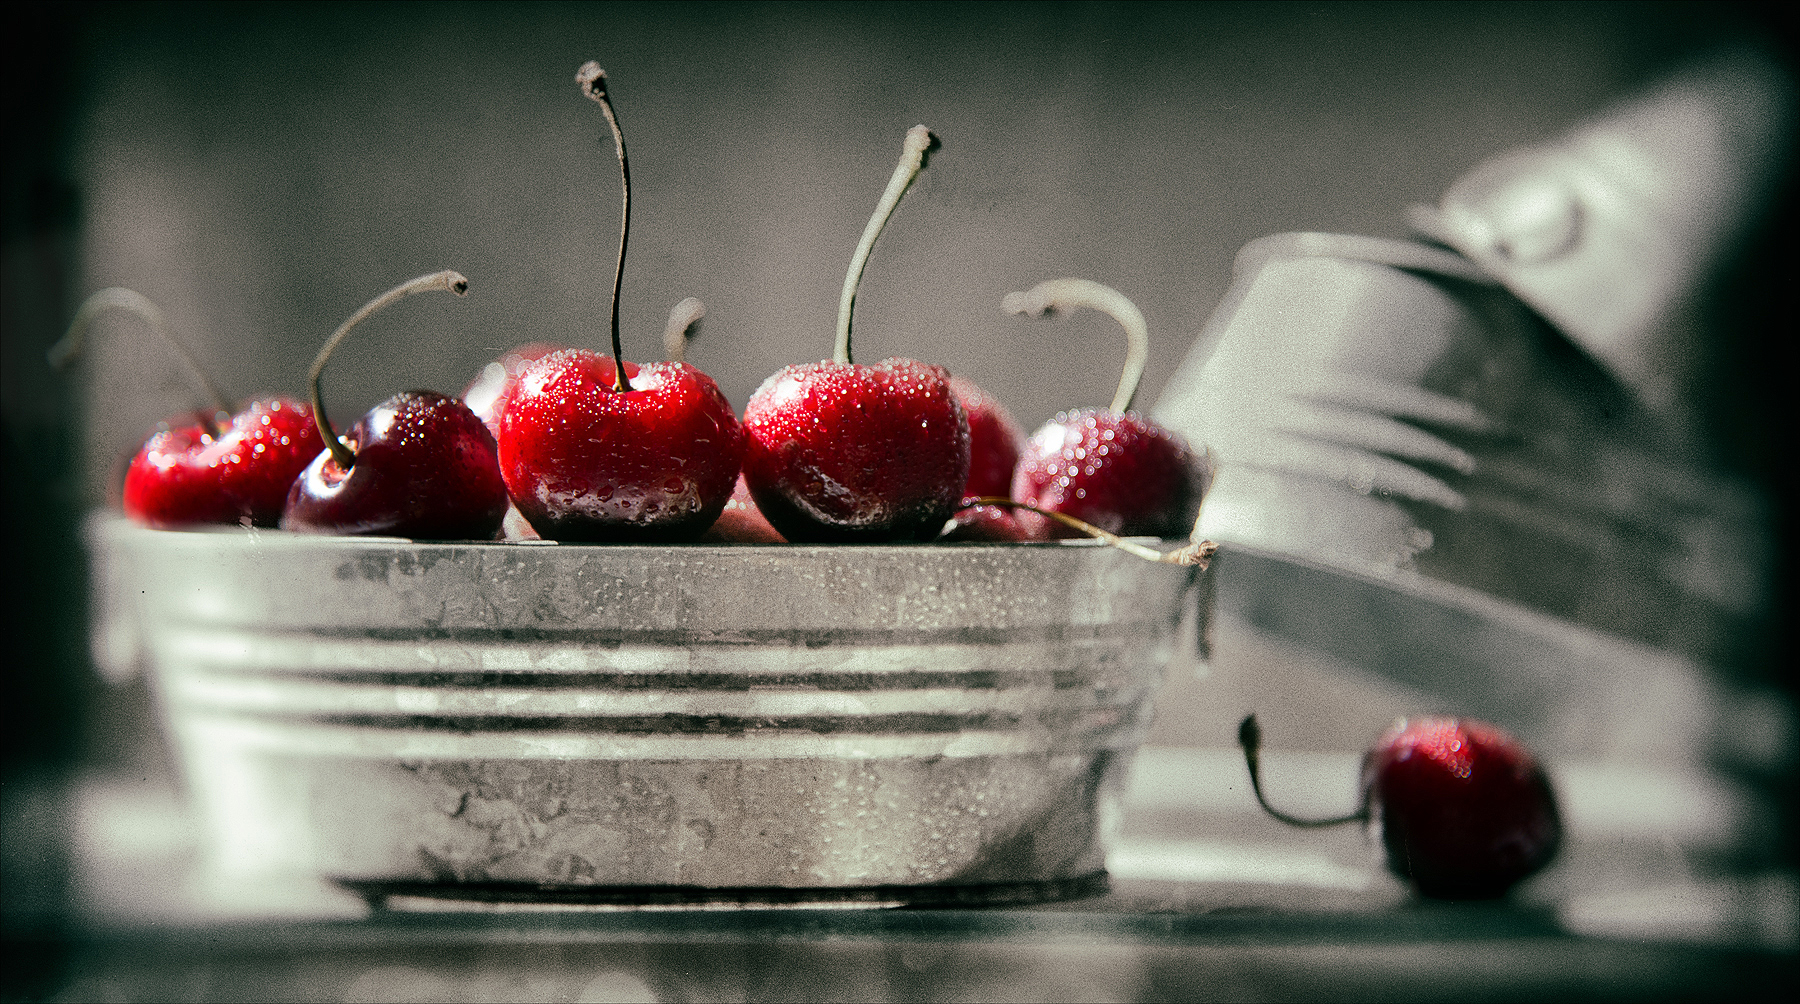 Cherries still life | Dovis Bird Agency Photography